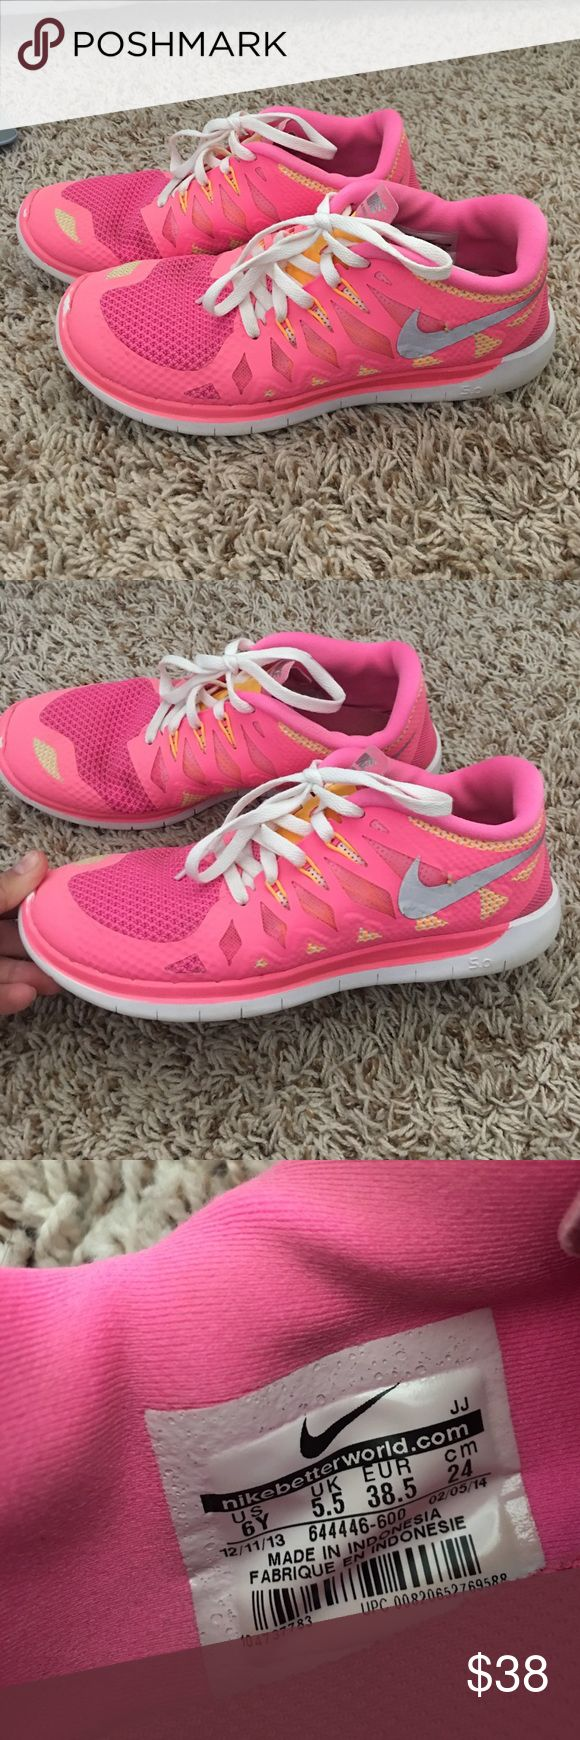 💰REDUCED💰Nike tennis shoes women's size 6 Women's Nike shoes in excellent condition size 6 Nike Shoes Sneakers